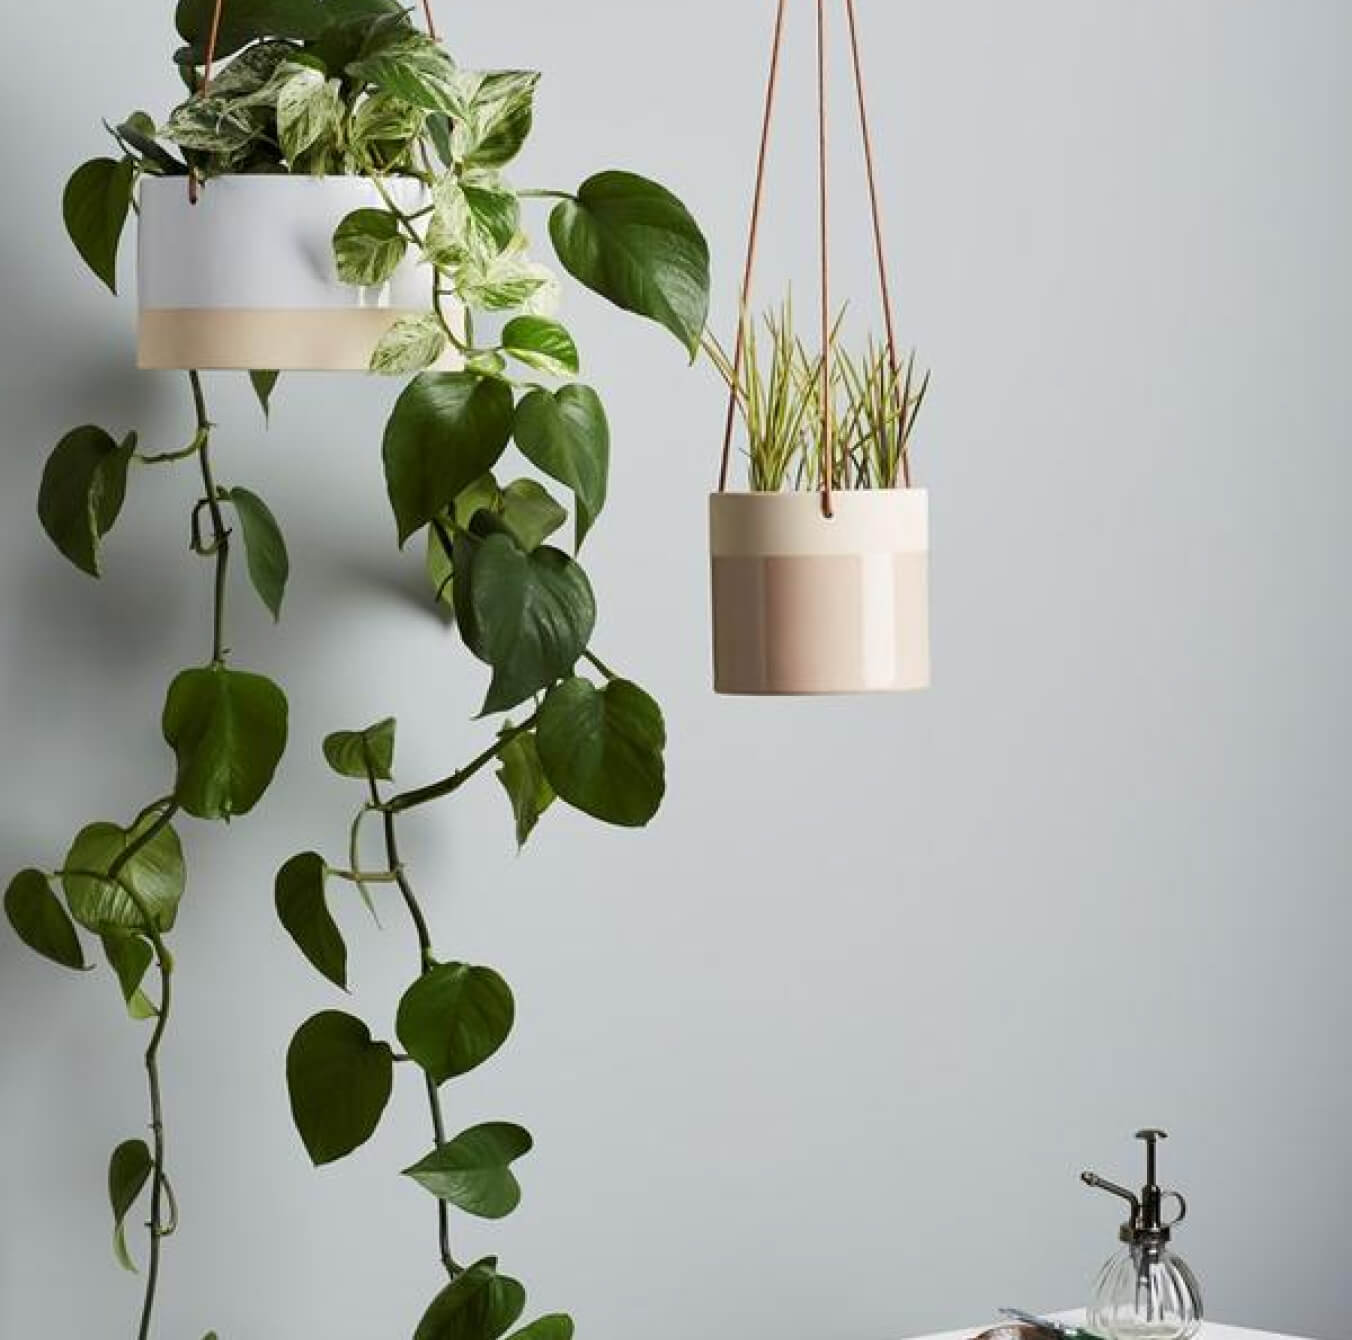 How's it hanging? How to hang plants from your ceiling in less than 20 minutes